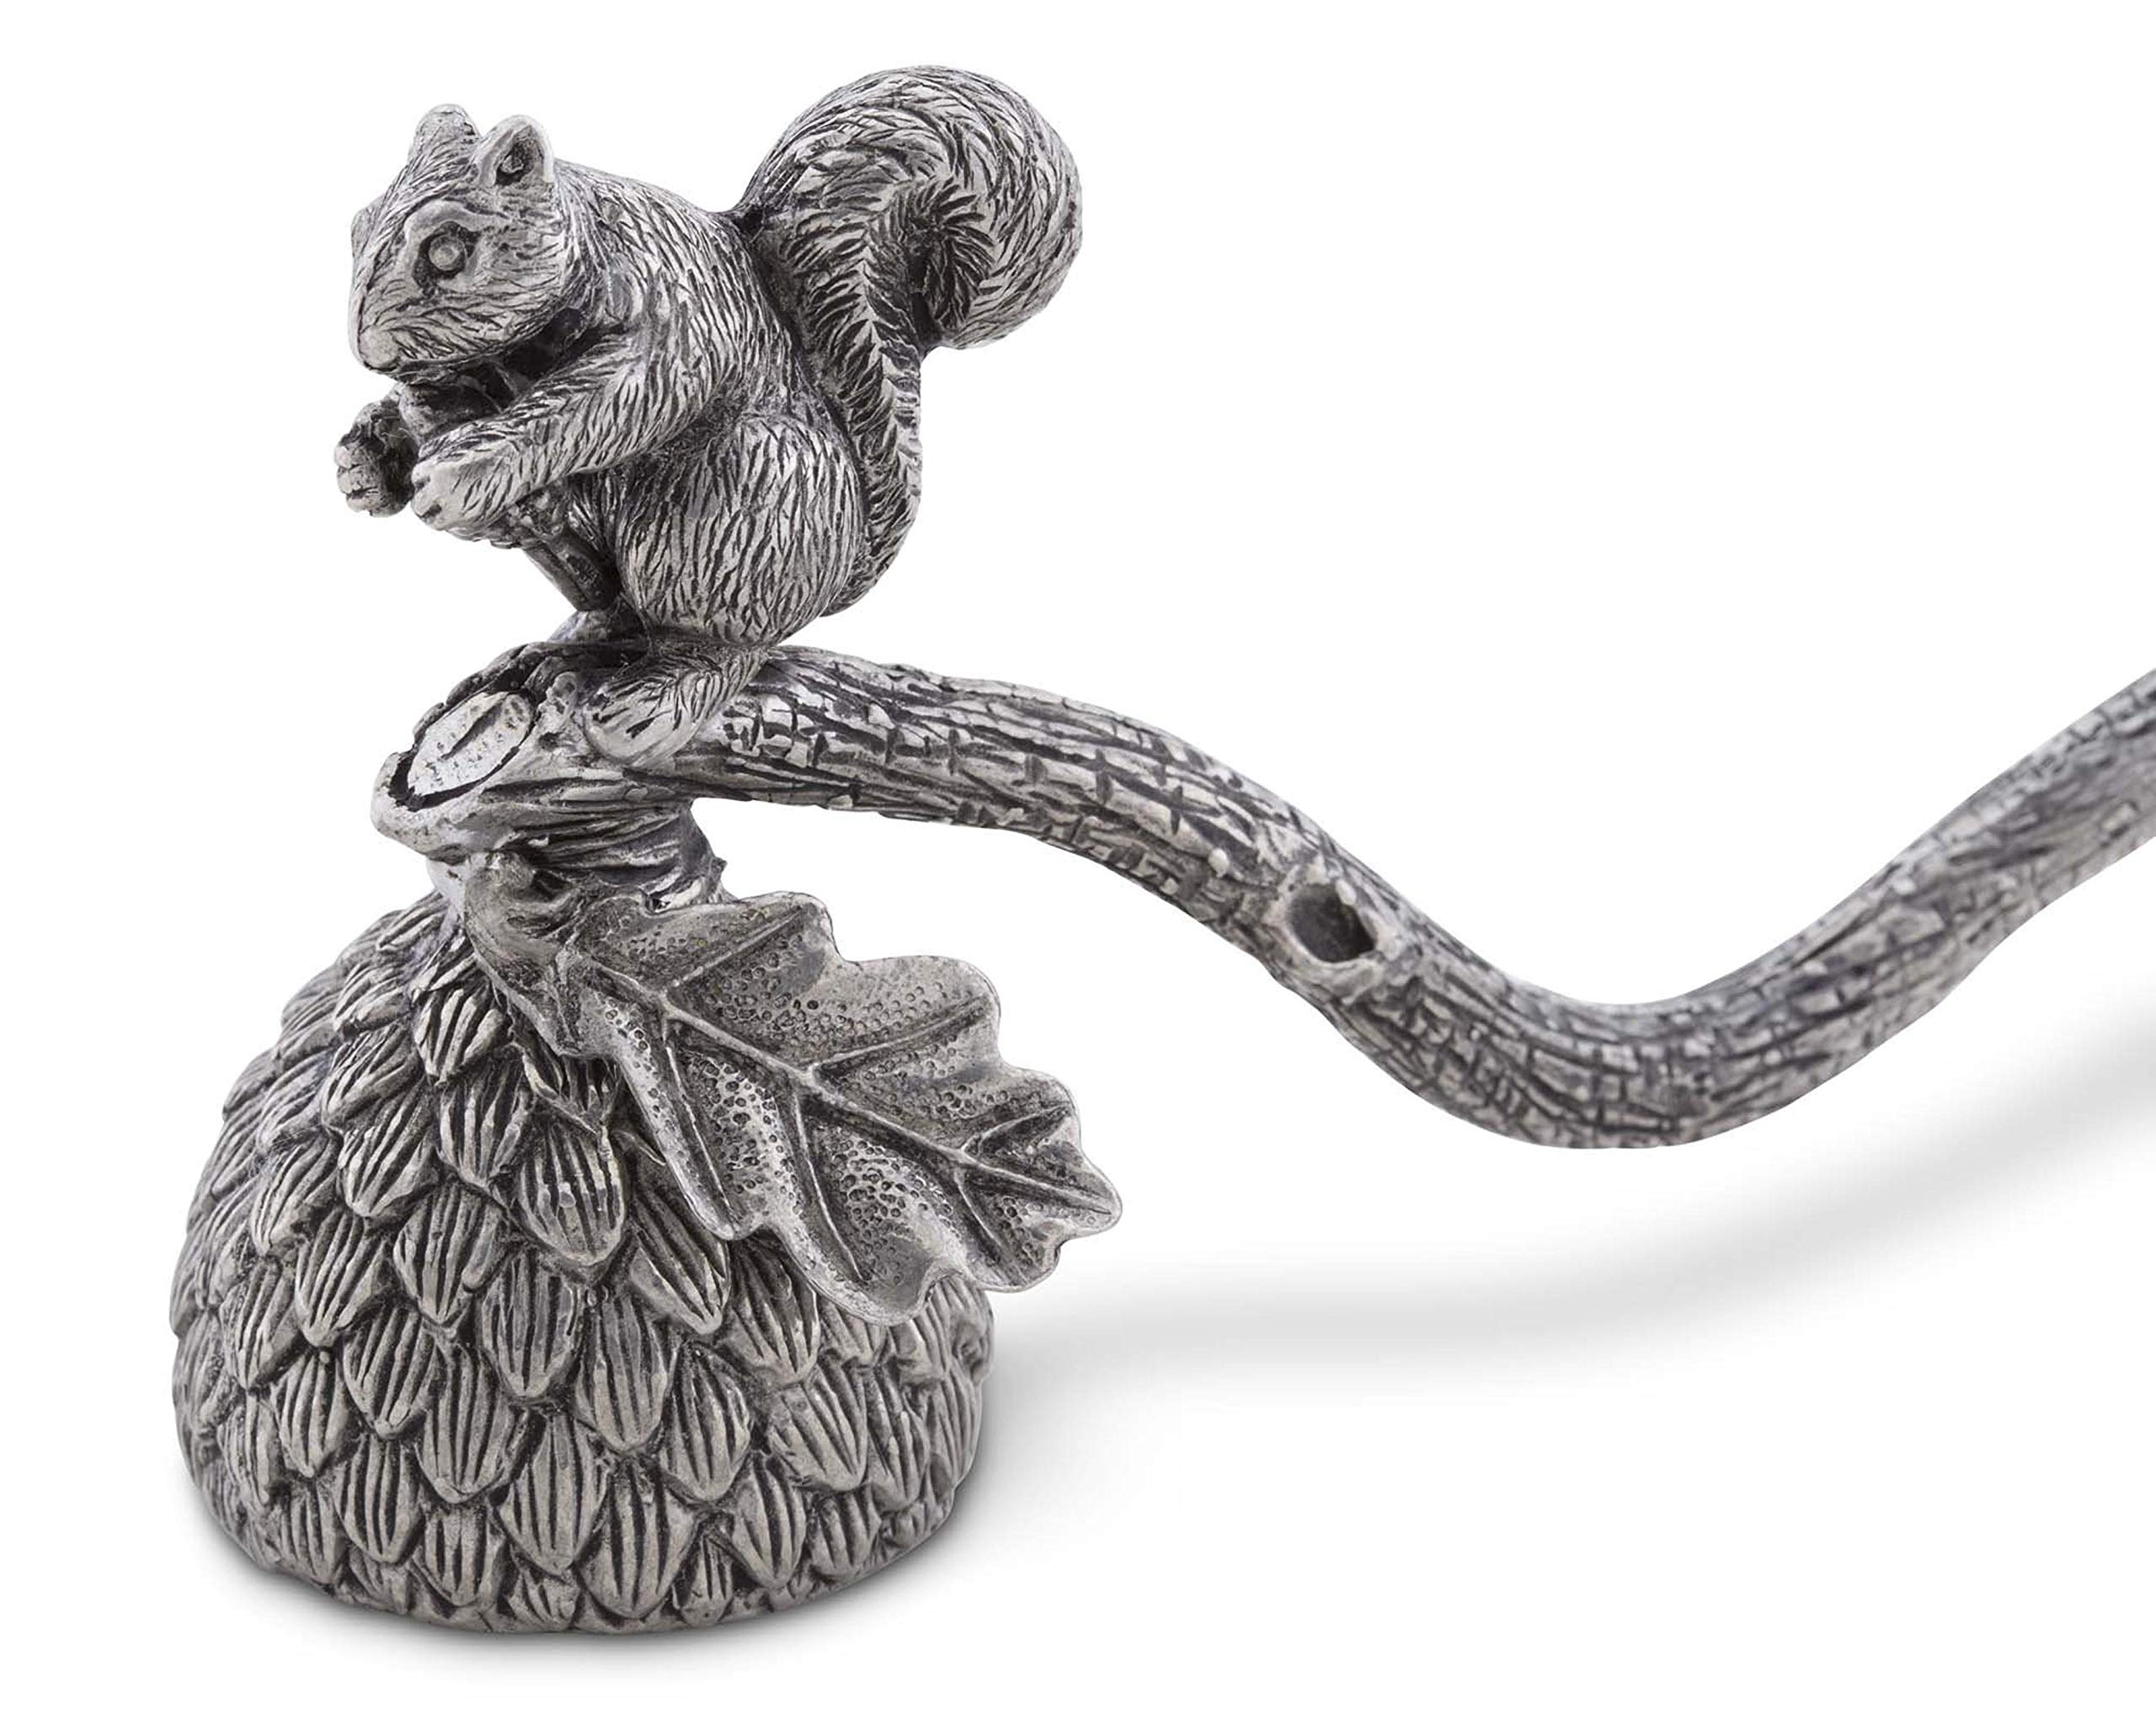 Vagabond House Pewter Squirrel Candle Snuffer 10'' Long by Vagabond House (Image #3)